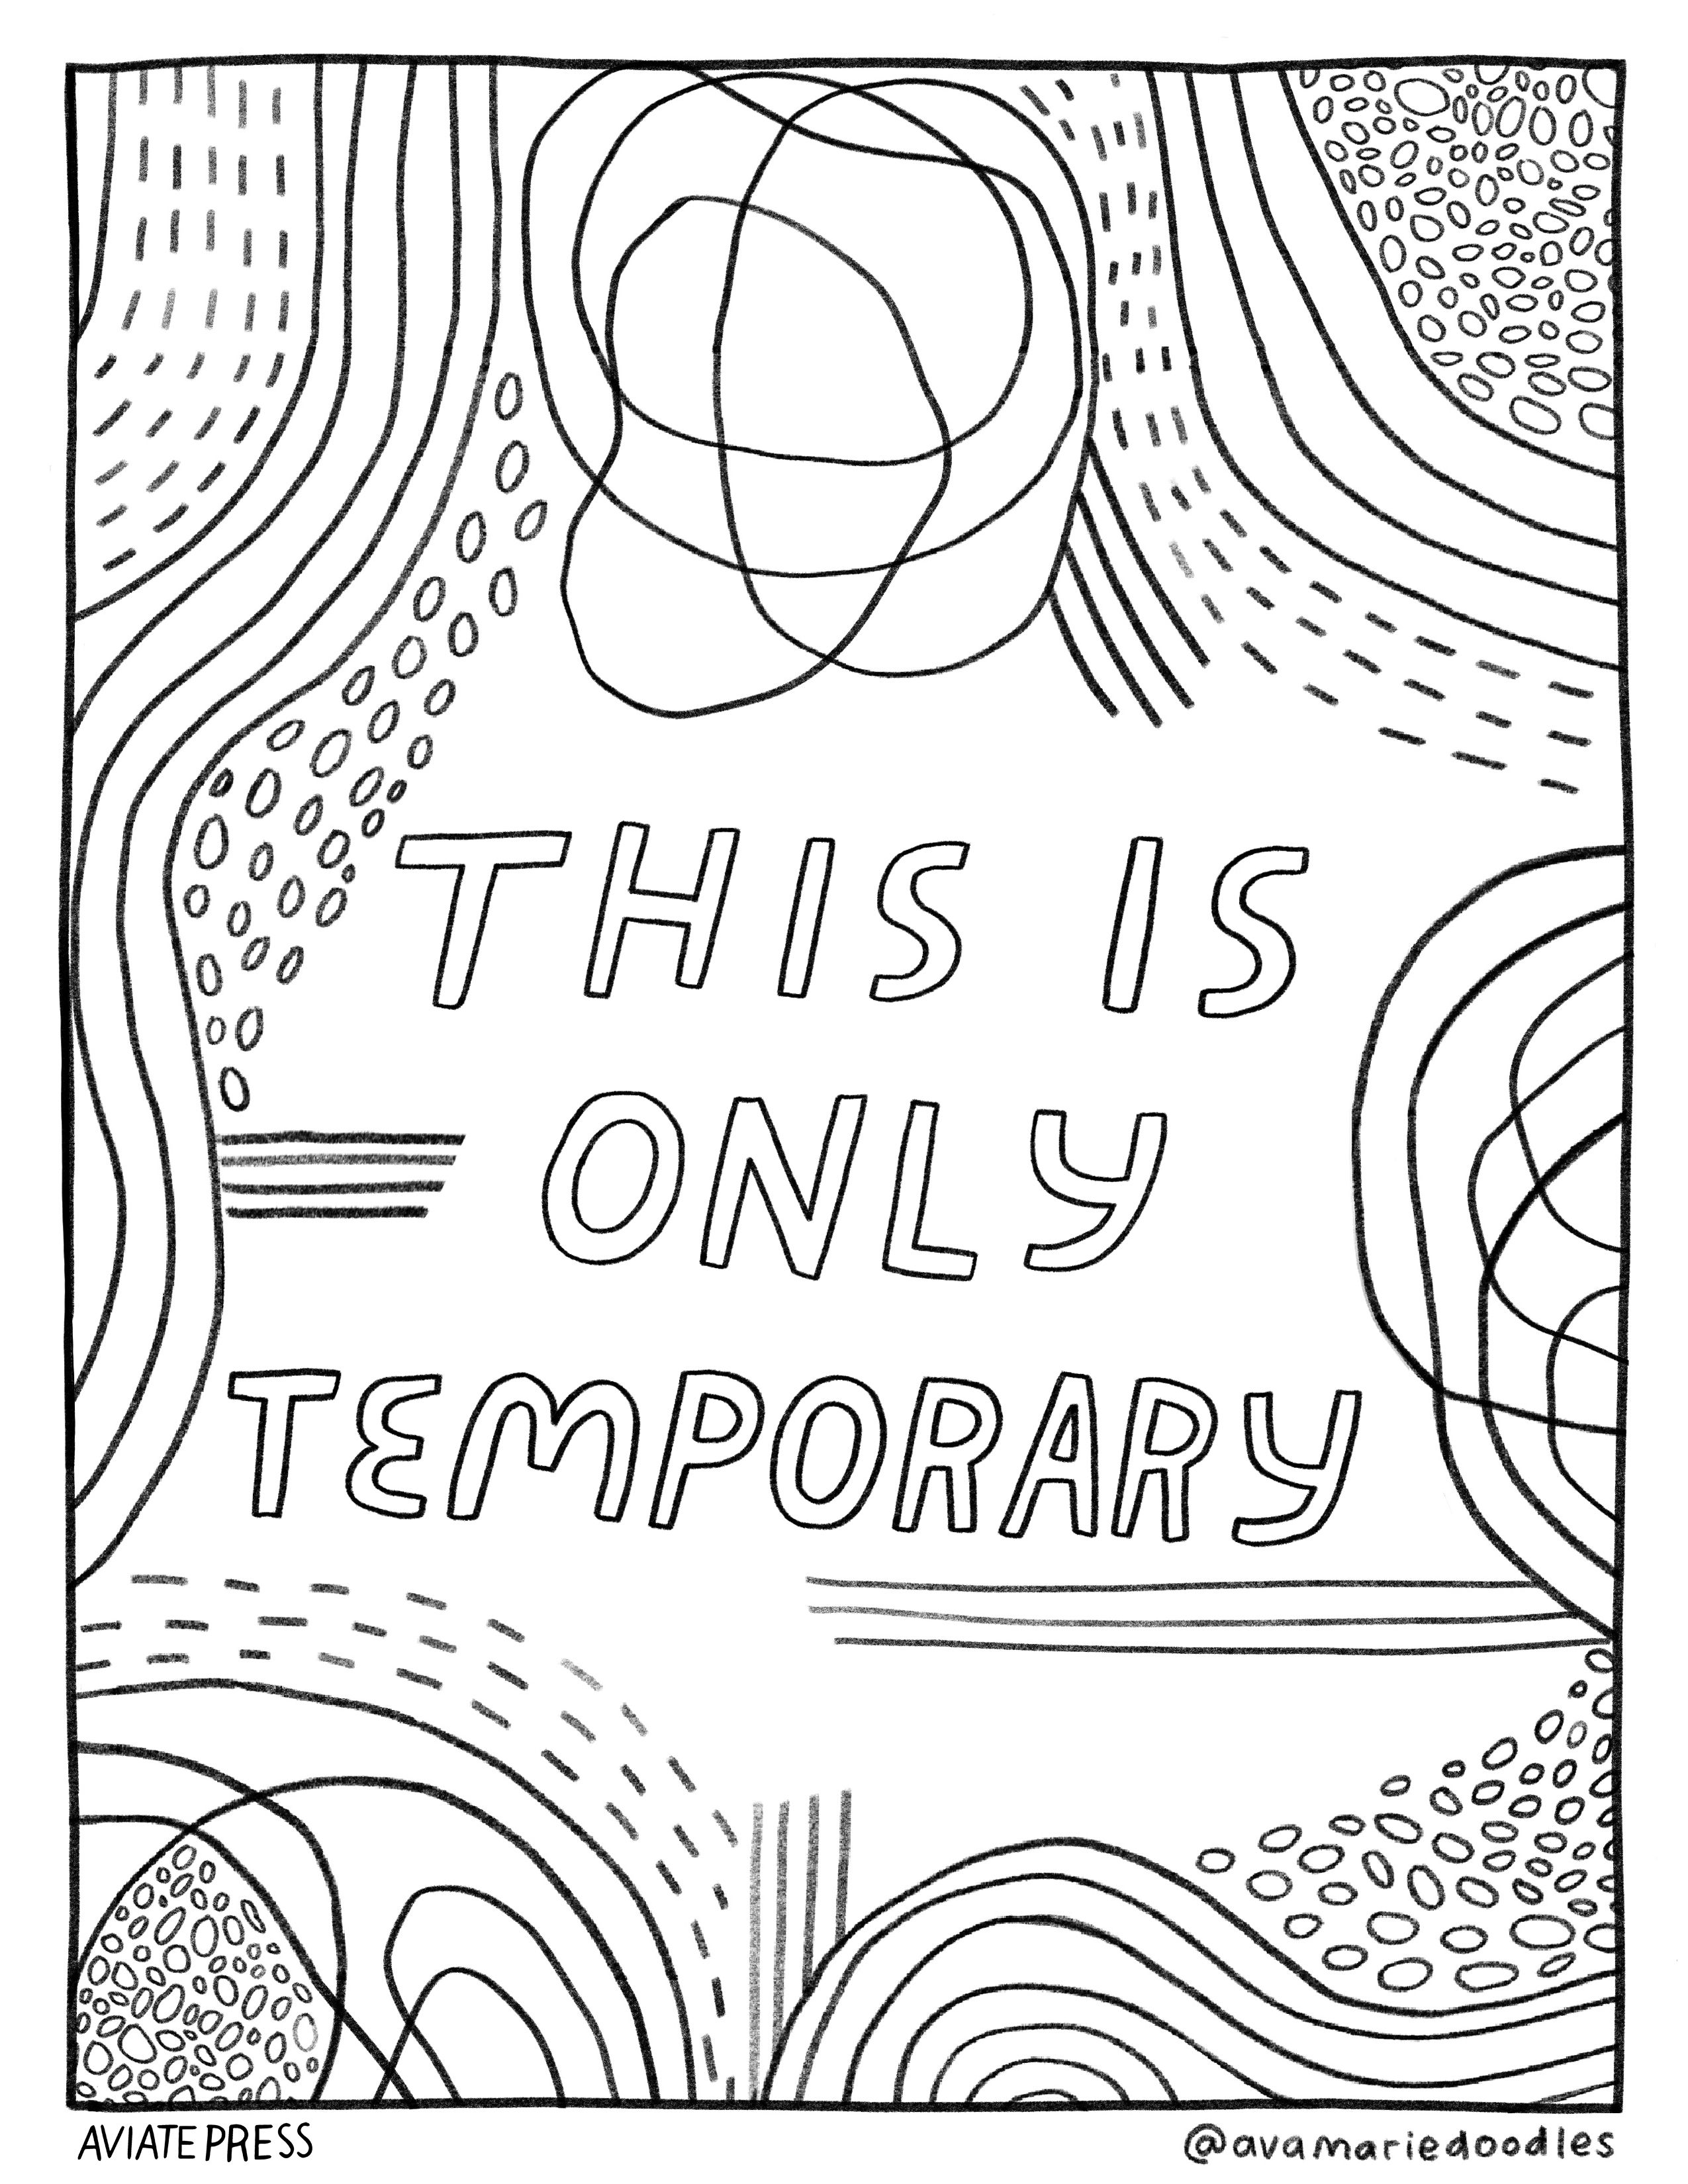 how to turn a picture into a coloring page 79 awesome photography of turn picture into coloring page how picture to turn a page into a coloring